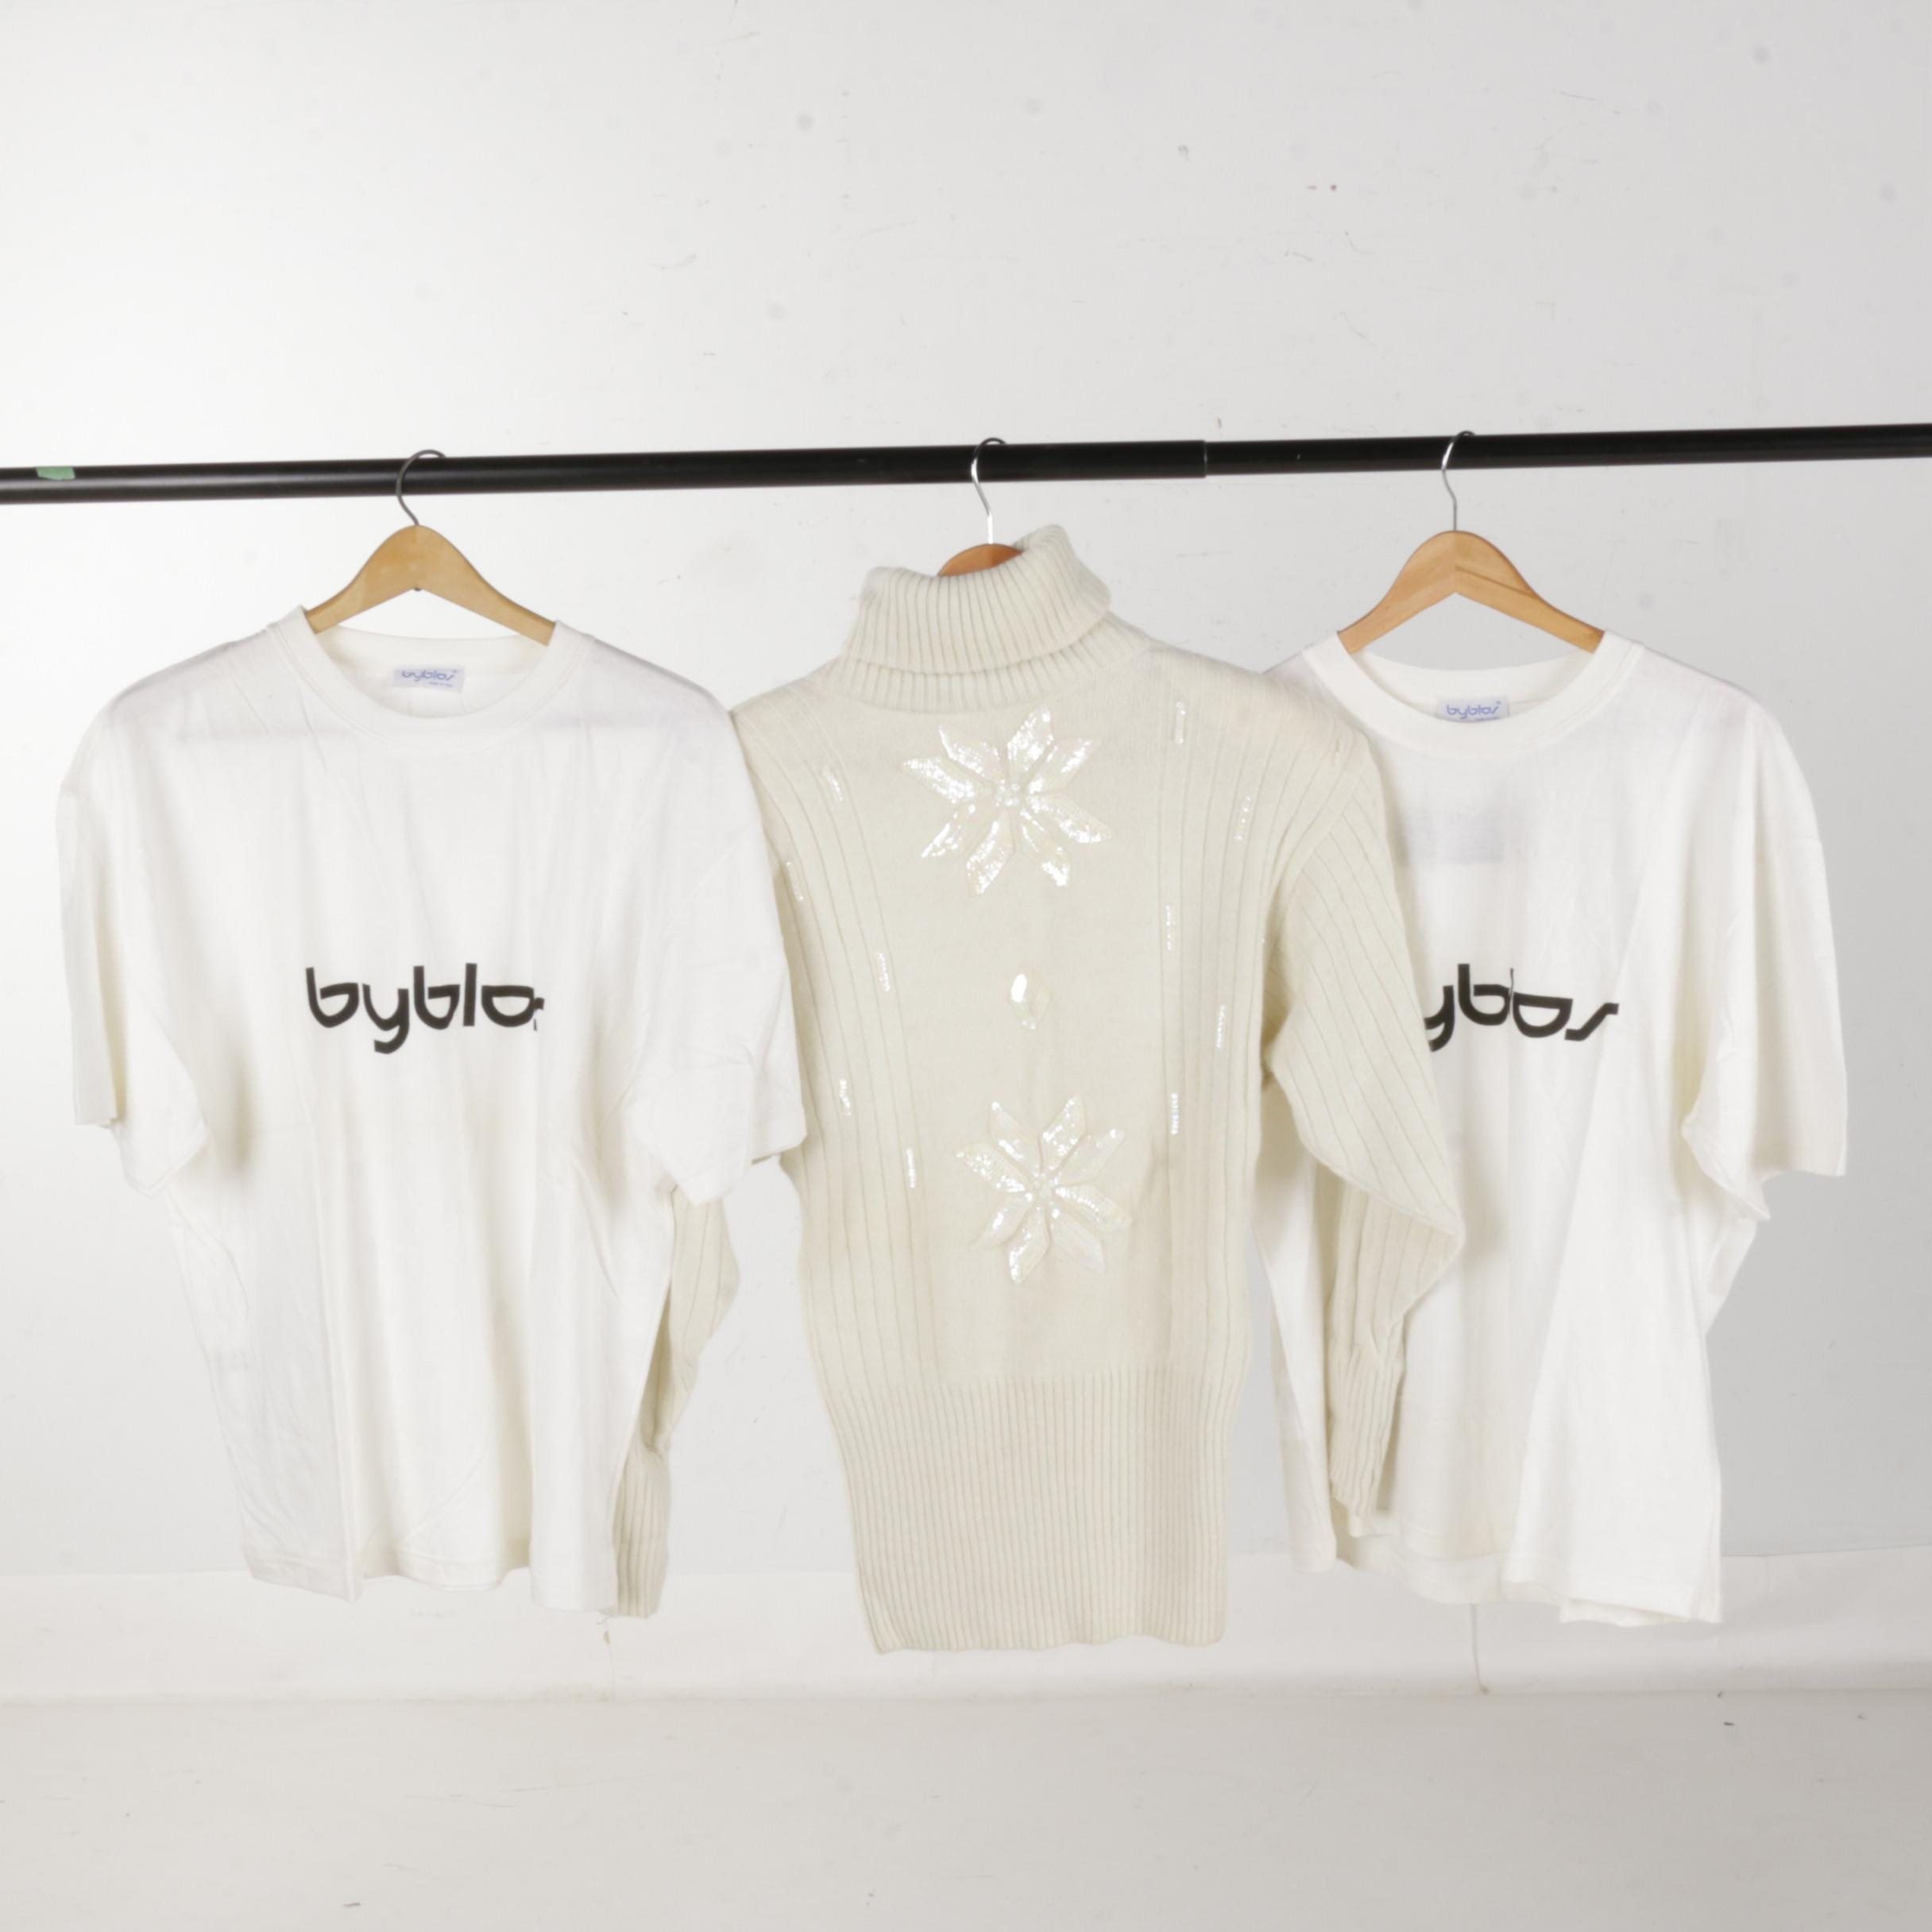 Women's Byblos Turtleneck Sweater and Shirts